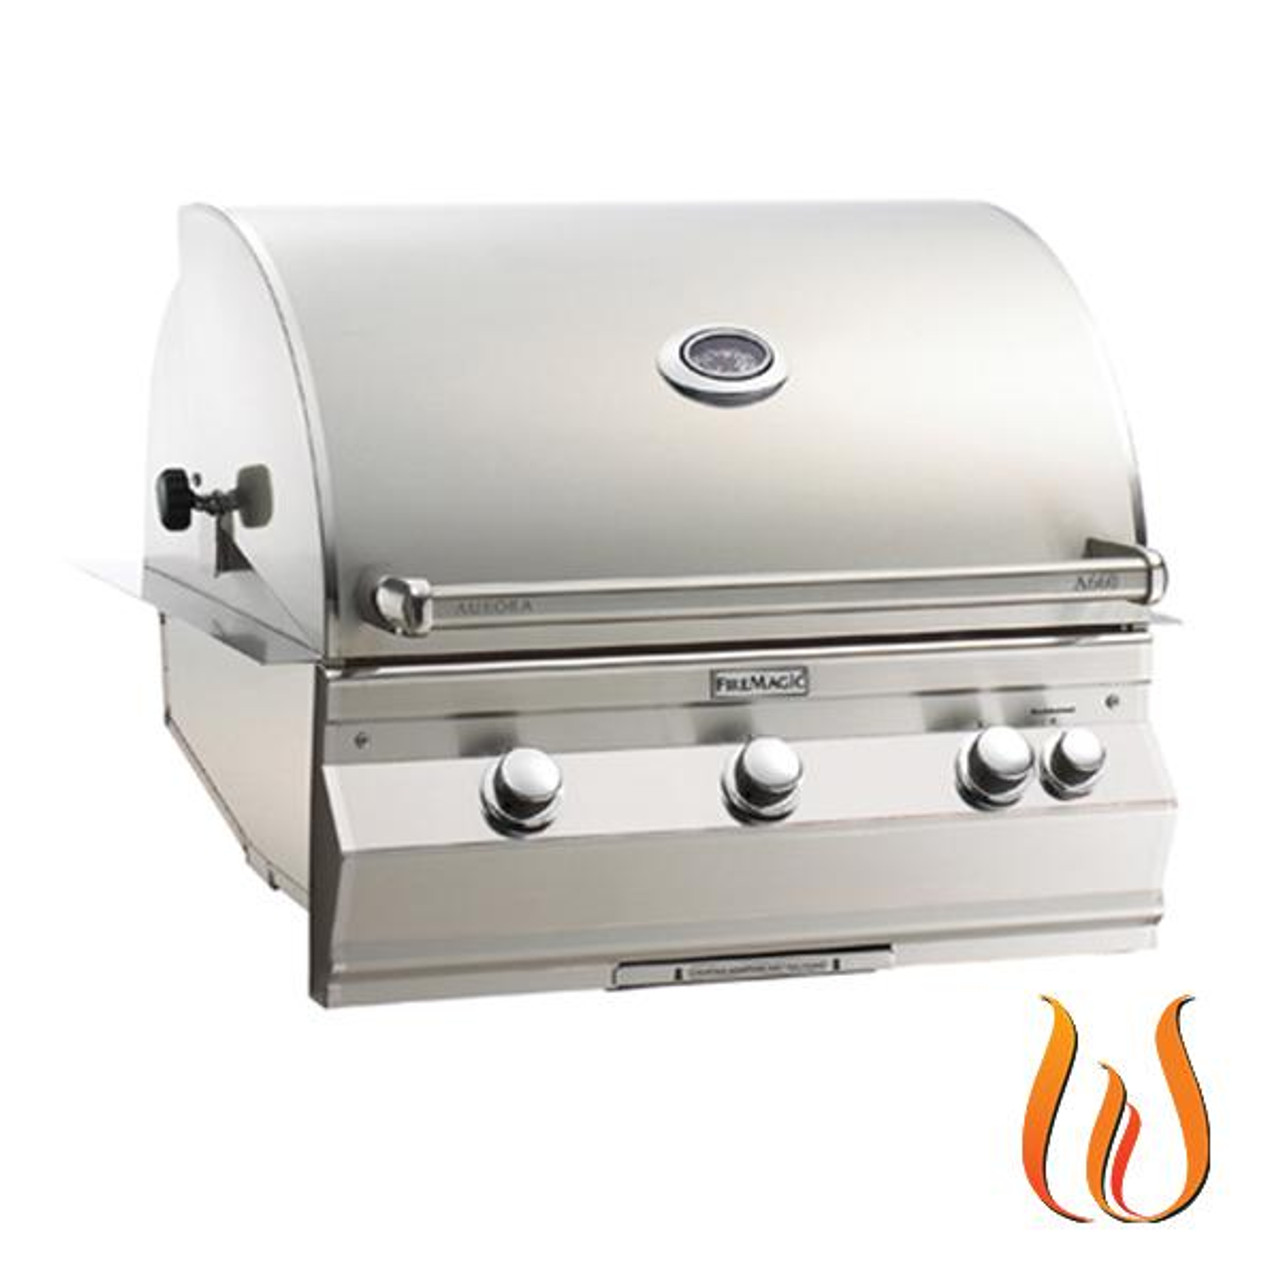 Build Your FireMagic Aurora Built-In Grill.